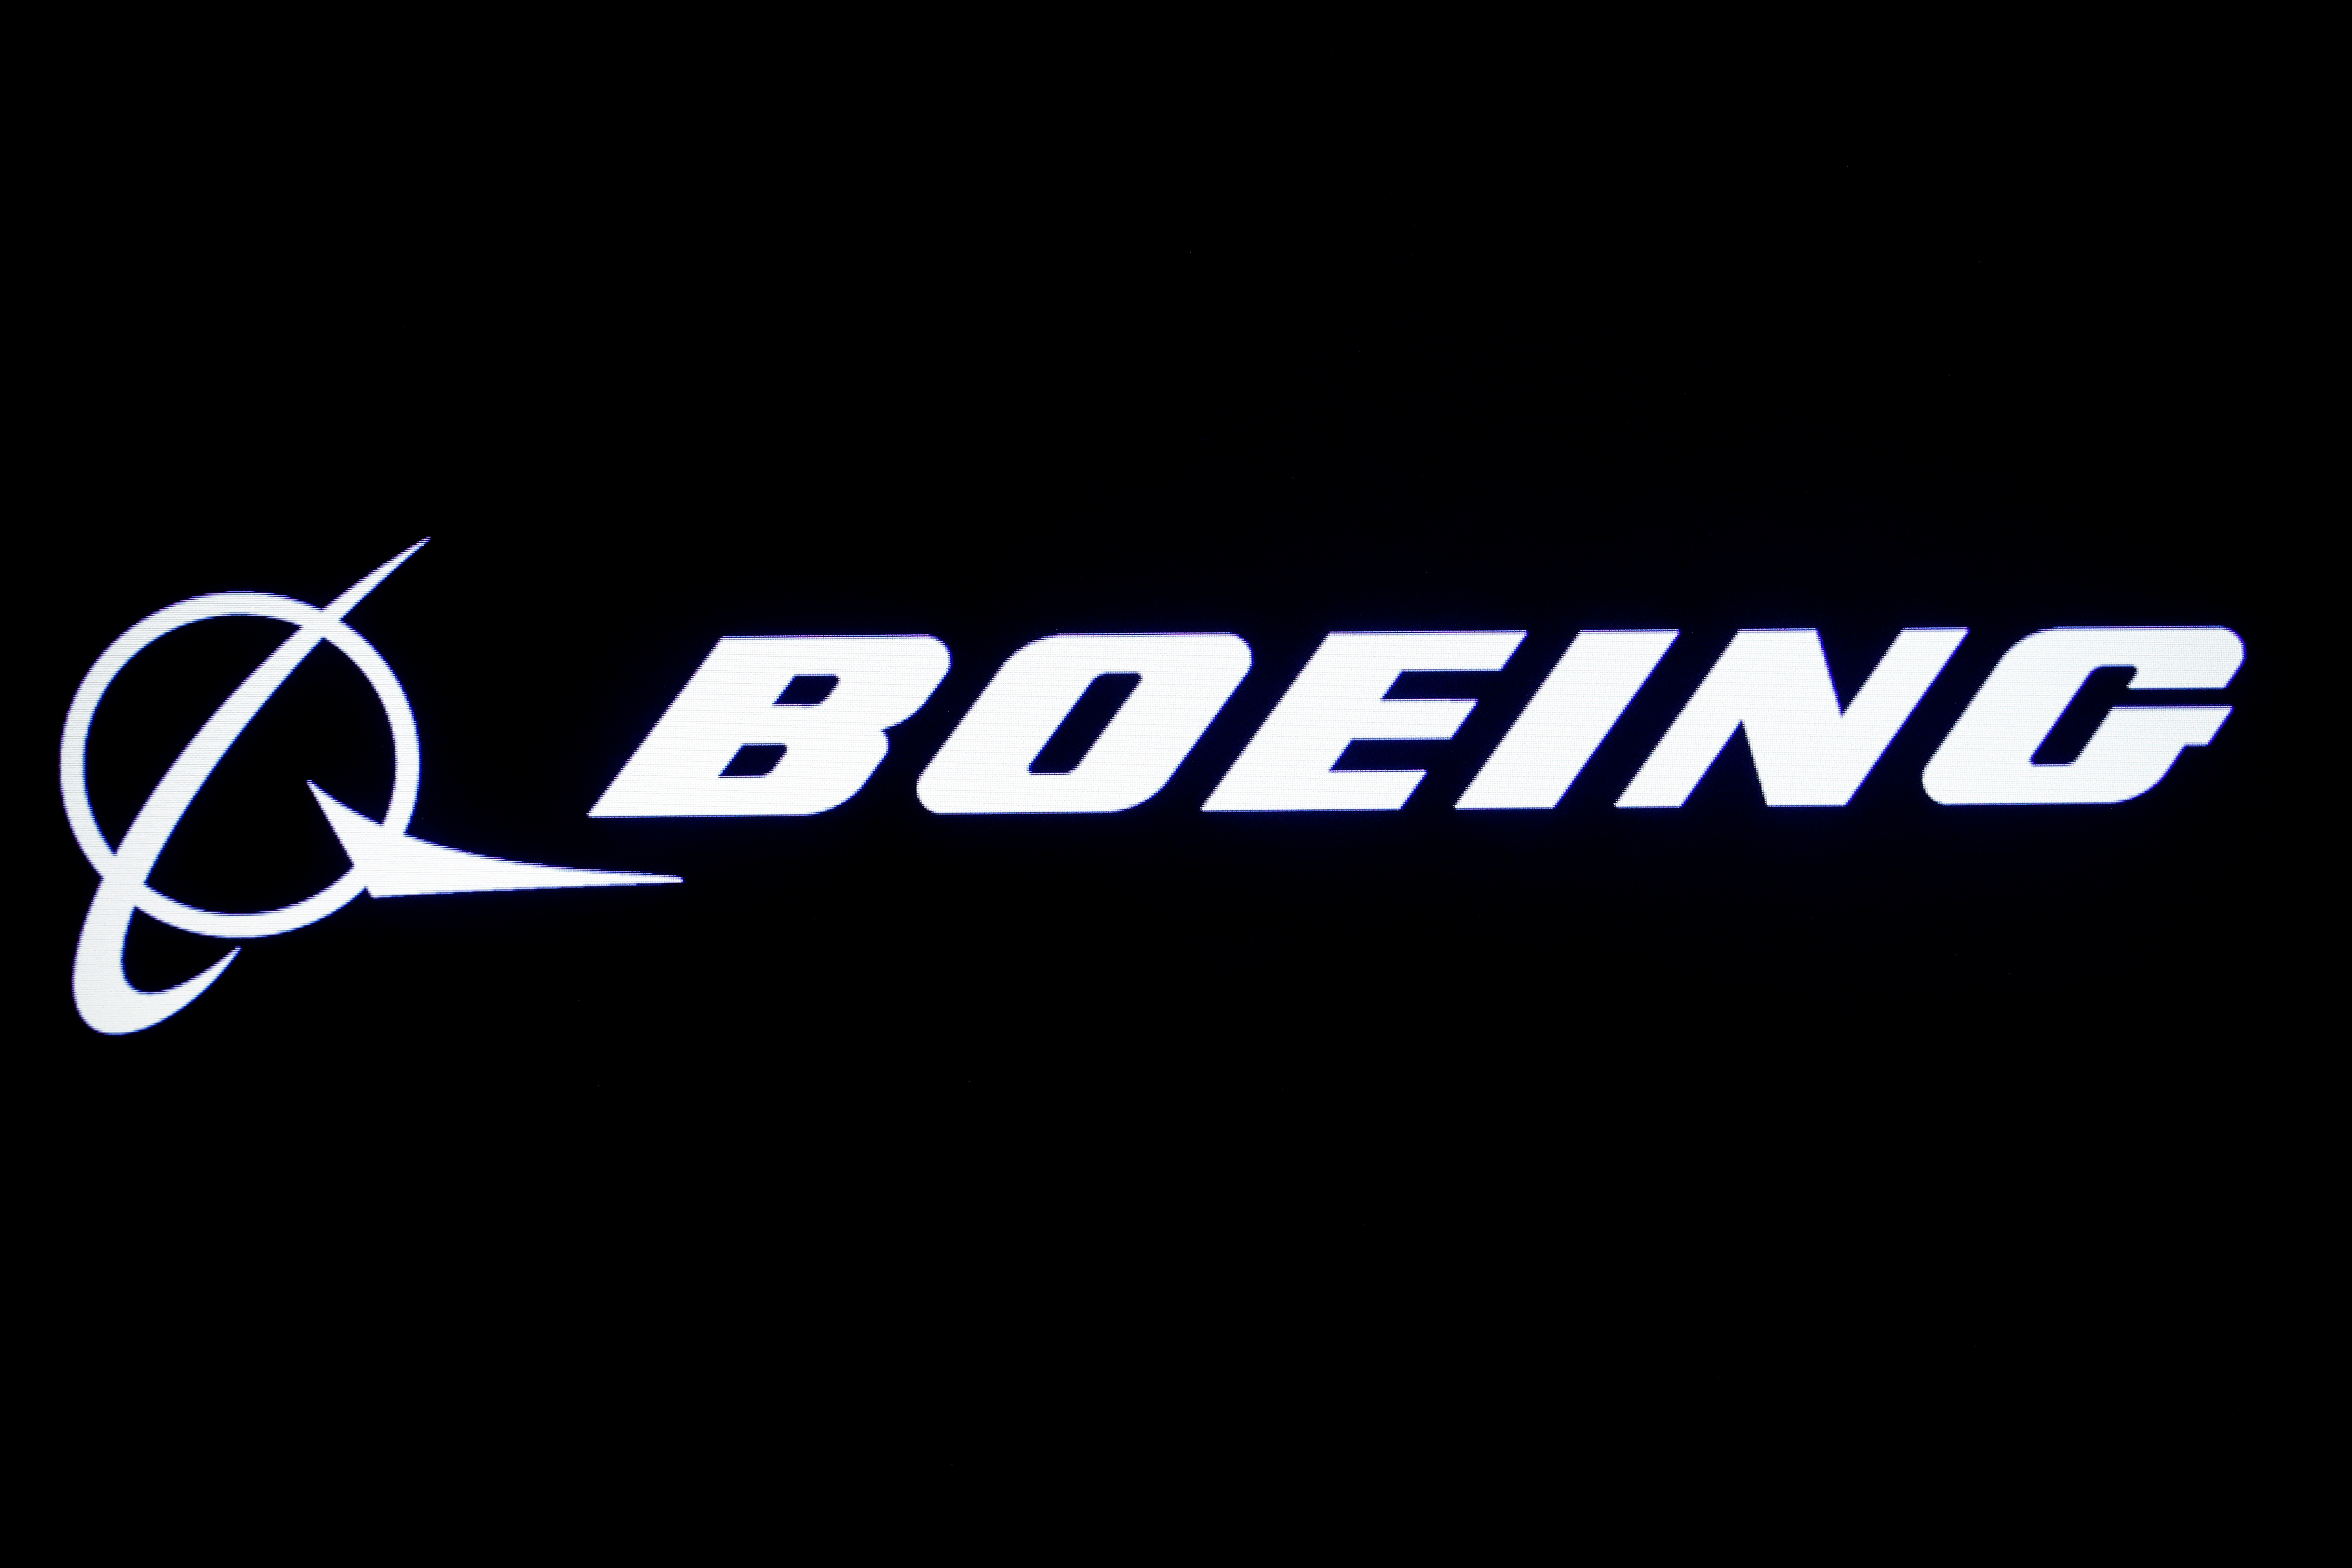 The Boeing logo is displayed on a screen, at the New York Stock Exchange (NYSE) in New York, U.S., August 7, 2019. REUTERS/Brendan McDermid